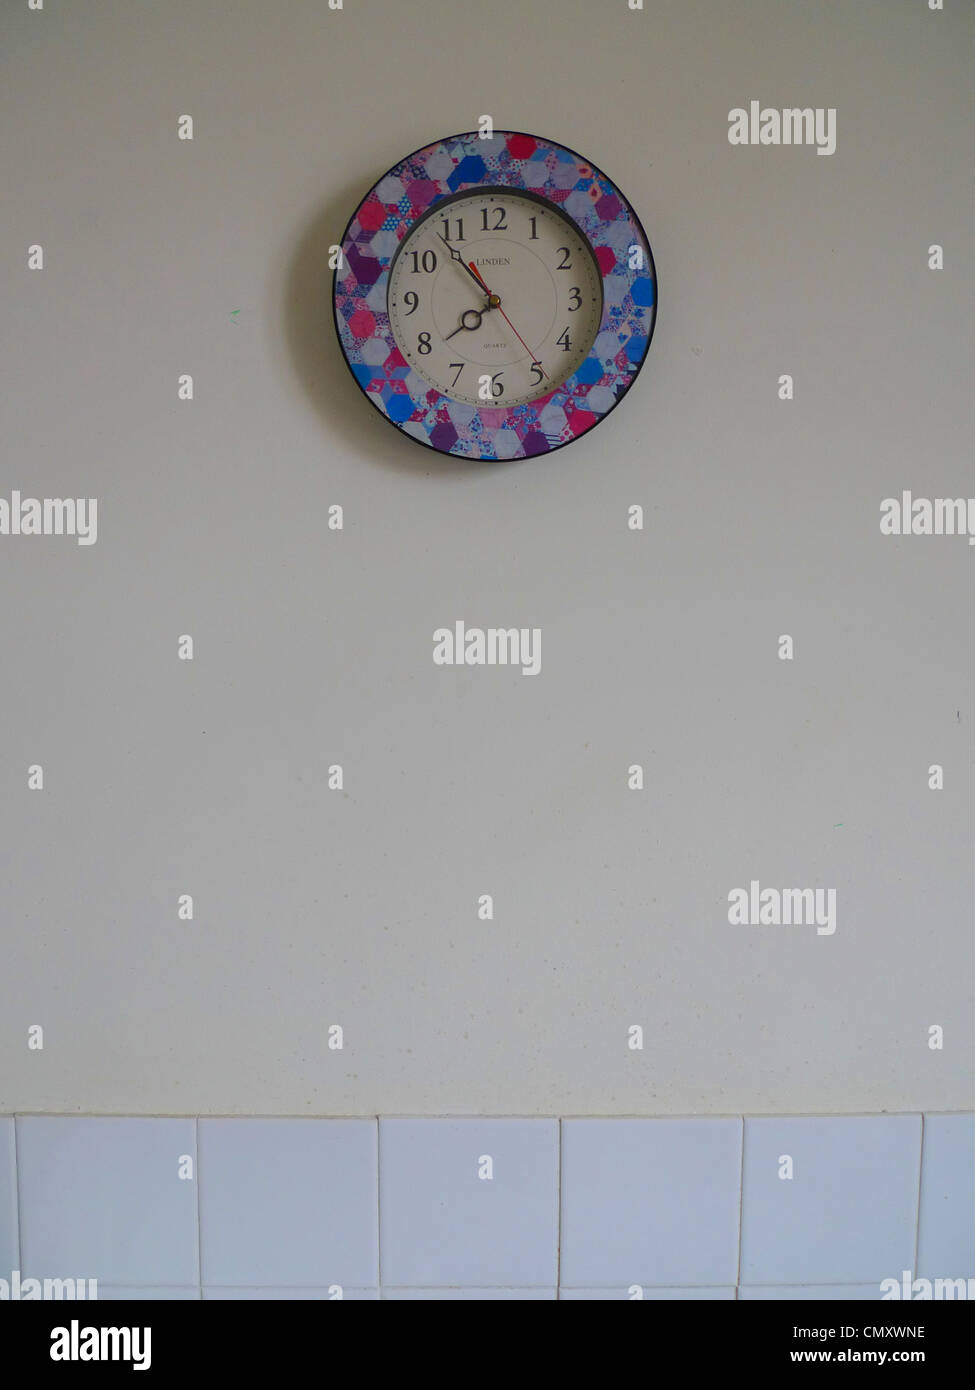 Clock on a wall - Stock Image